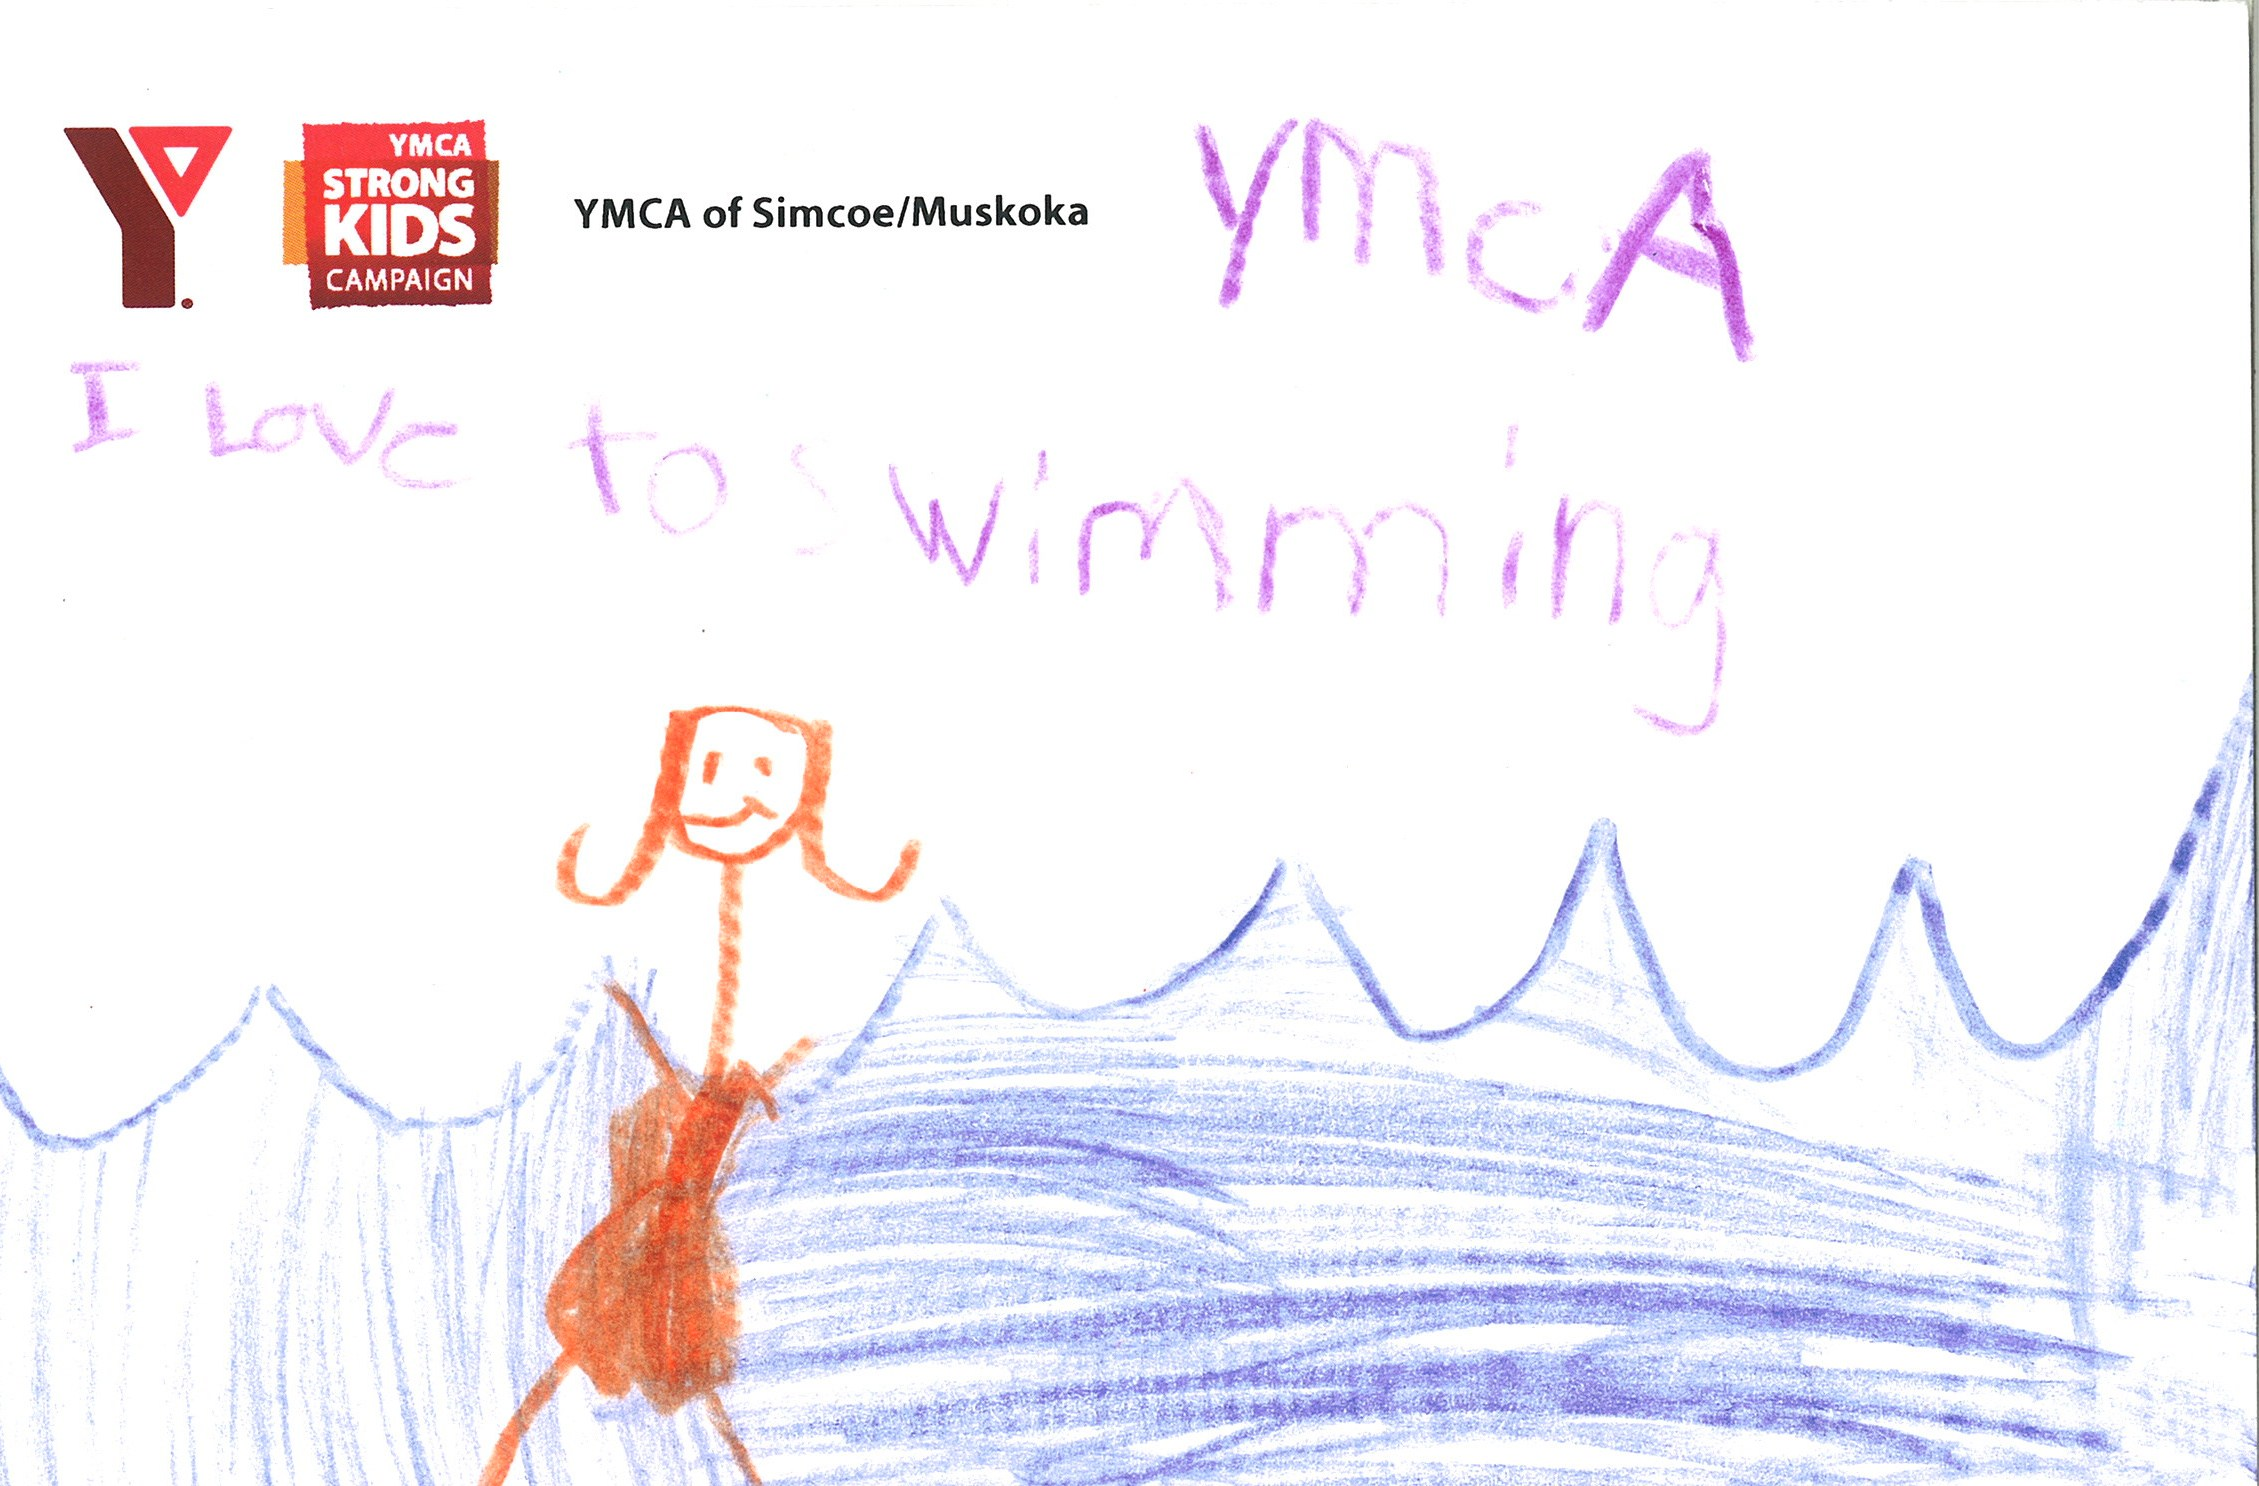 Swimming at the YMCA of Simcoe/Muskoka